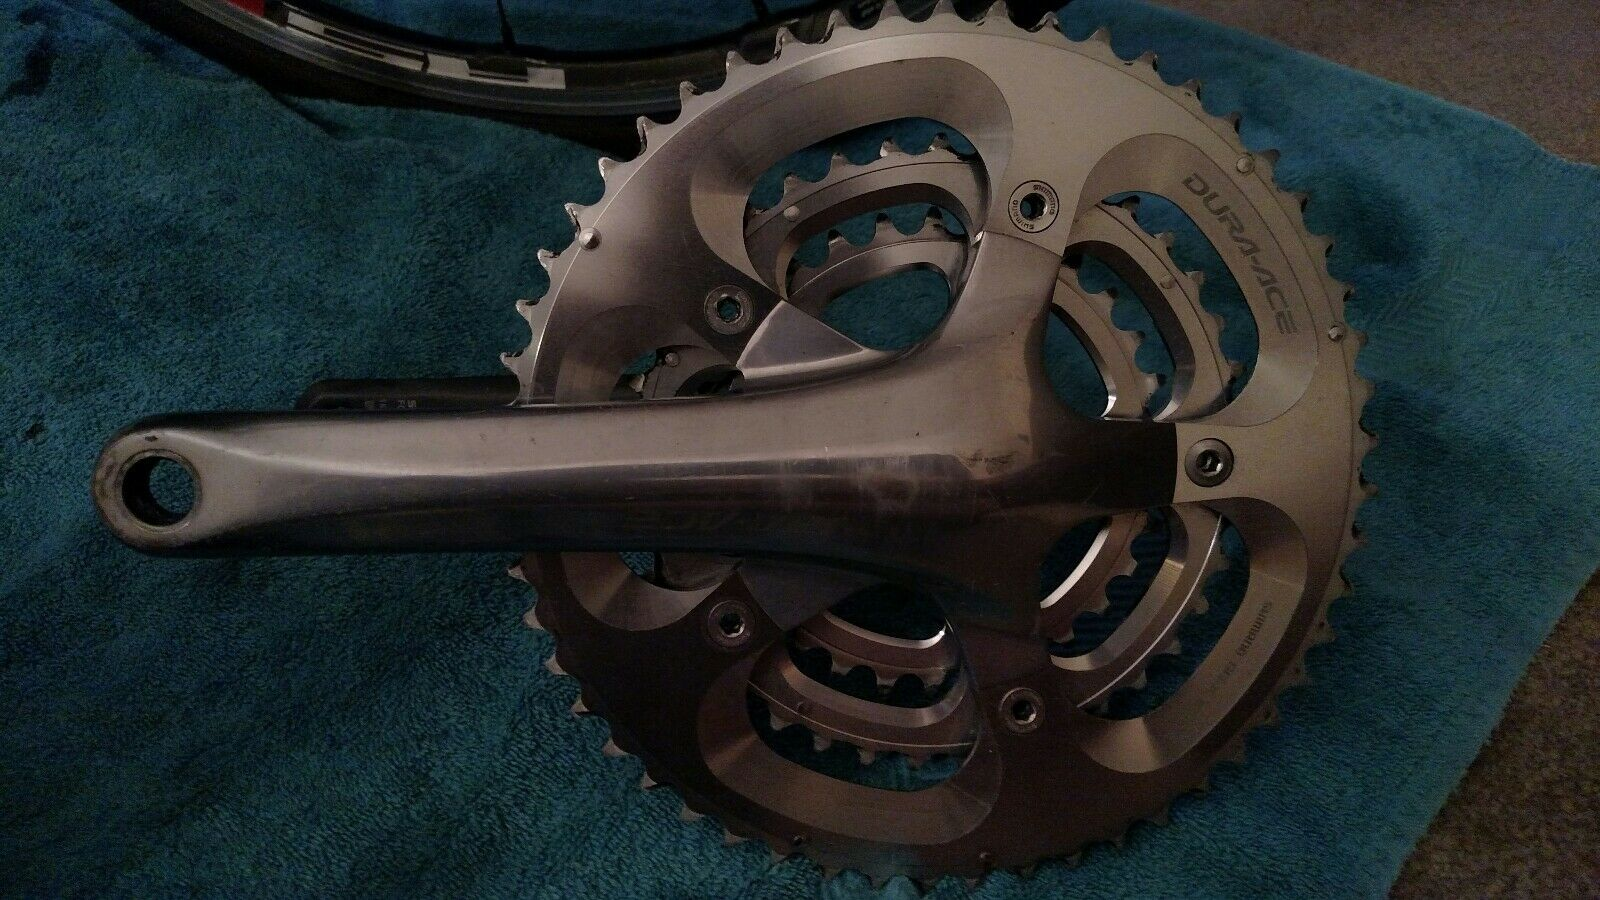 REDUCED   Shimano Dura Ace FC-7800 TRIPLE Road 172.5mm Crankset 52 39 30t  10 sp  check out the cheapest